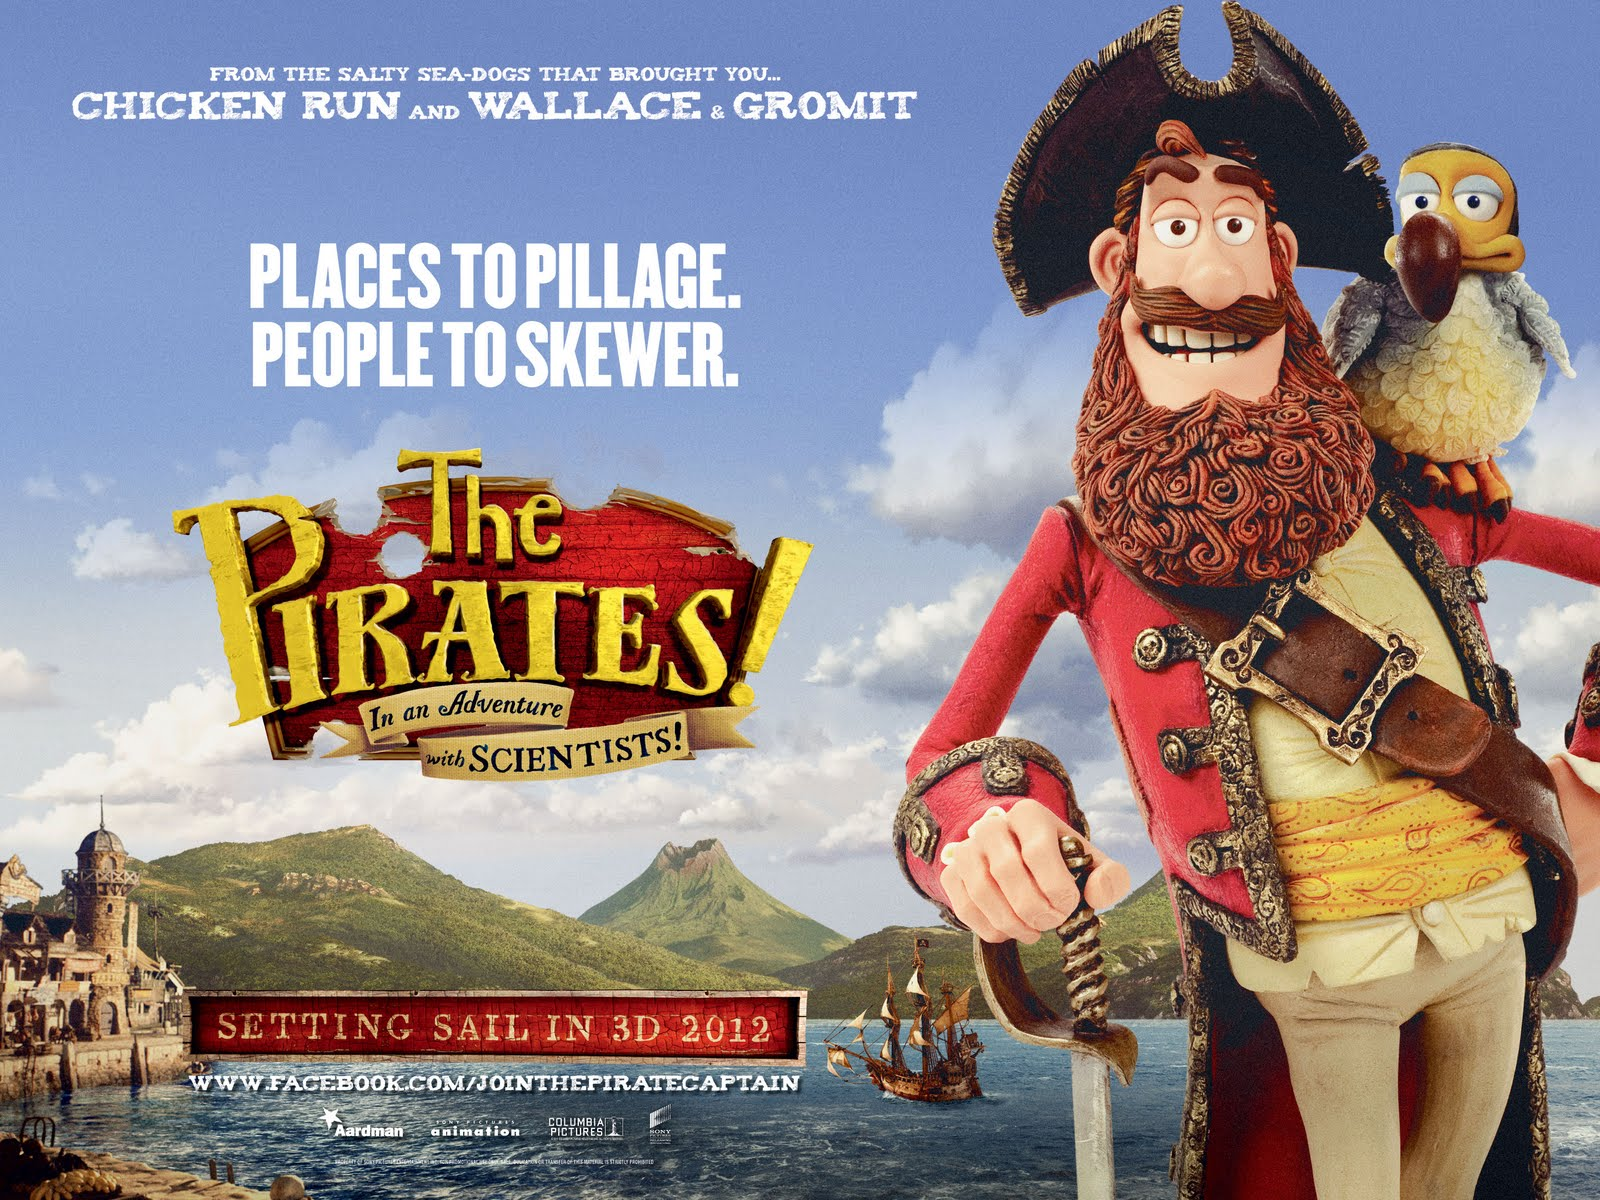 Scottish Actors: Trailers - Pirates! & Arthur Christmas